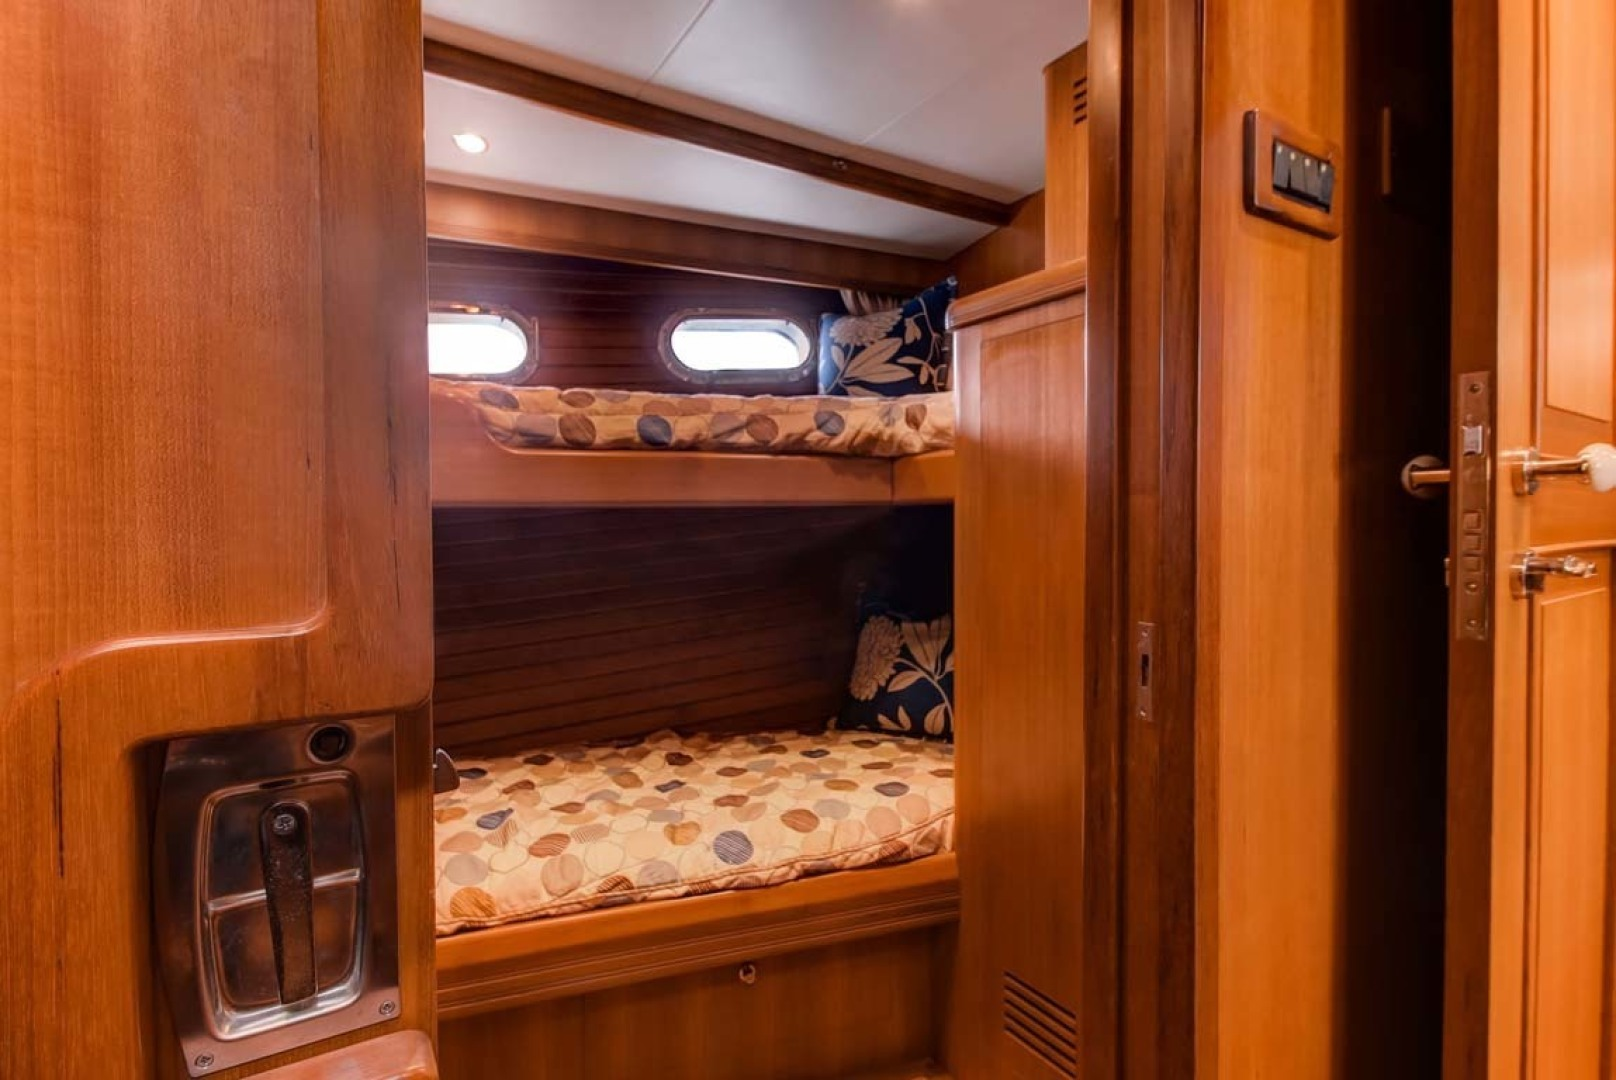 Selene-60 Ocean Trawler 2010-Gypsy Magic Jacksonville-Florida-United States-Midship Bunks-1346764 | Thumbnail